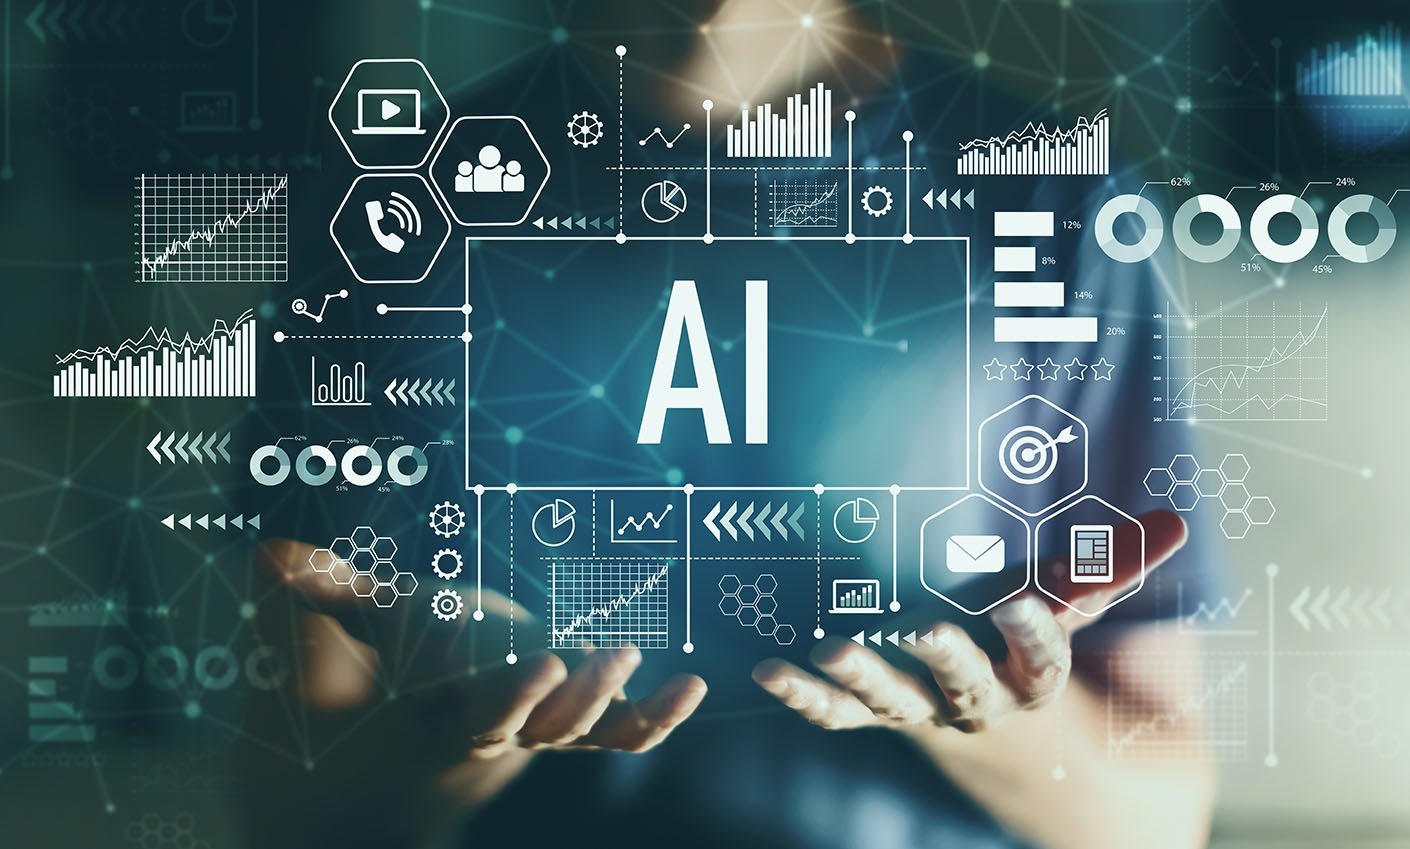 Benefits of AI in our life